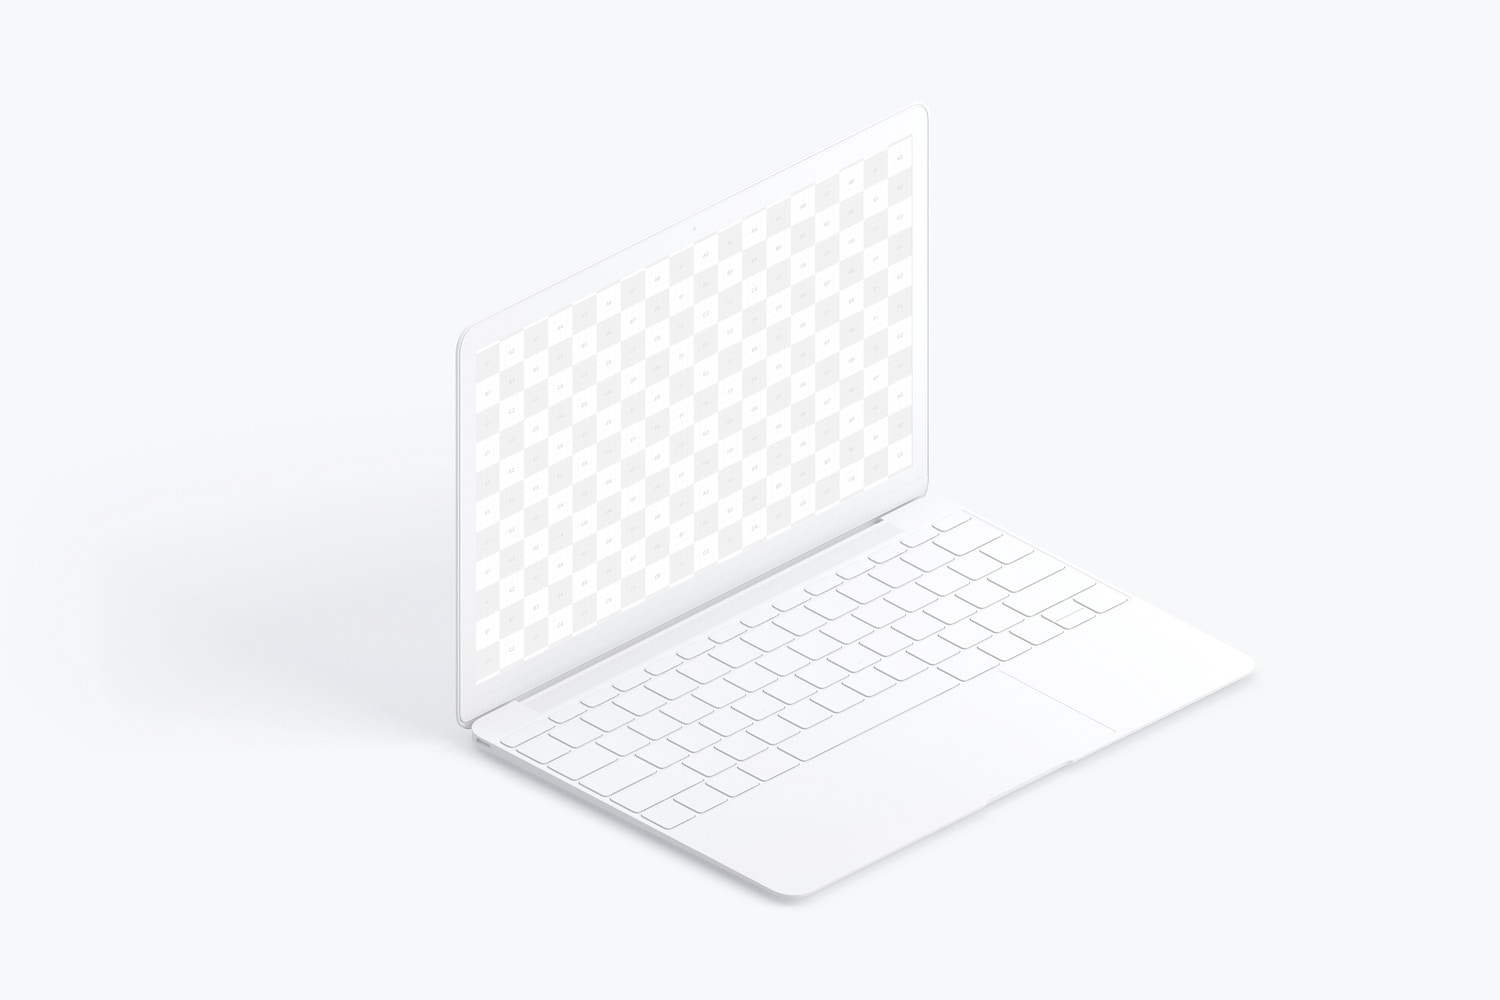 Clay MacBook Mockup, Isometric Left View (2) by Original Mockups on Original Mockups